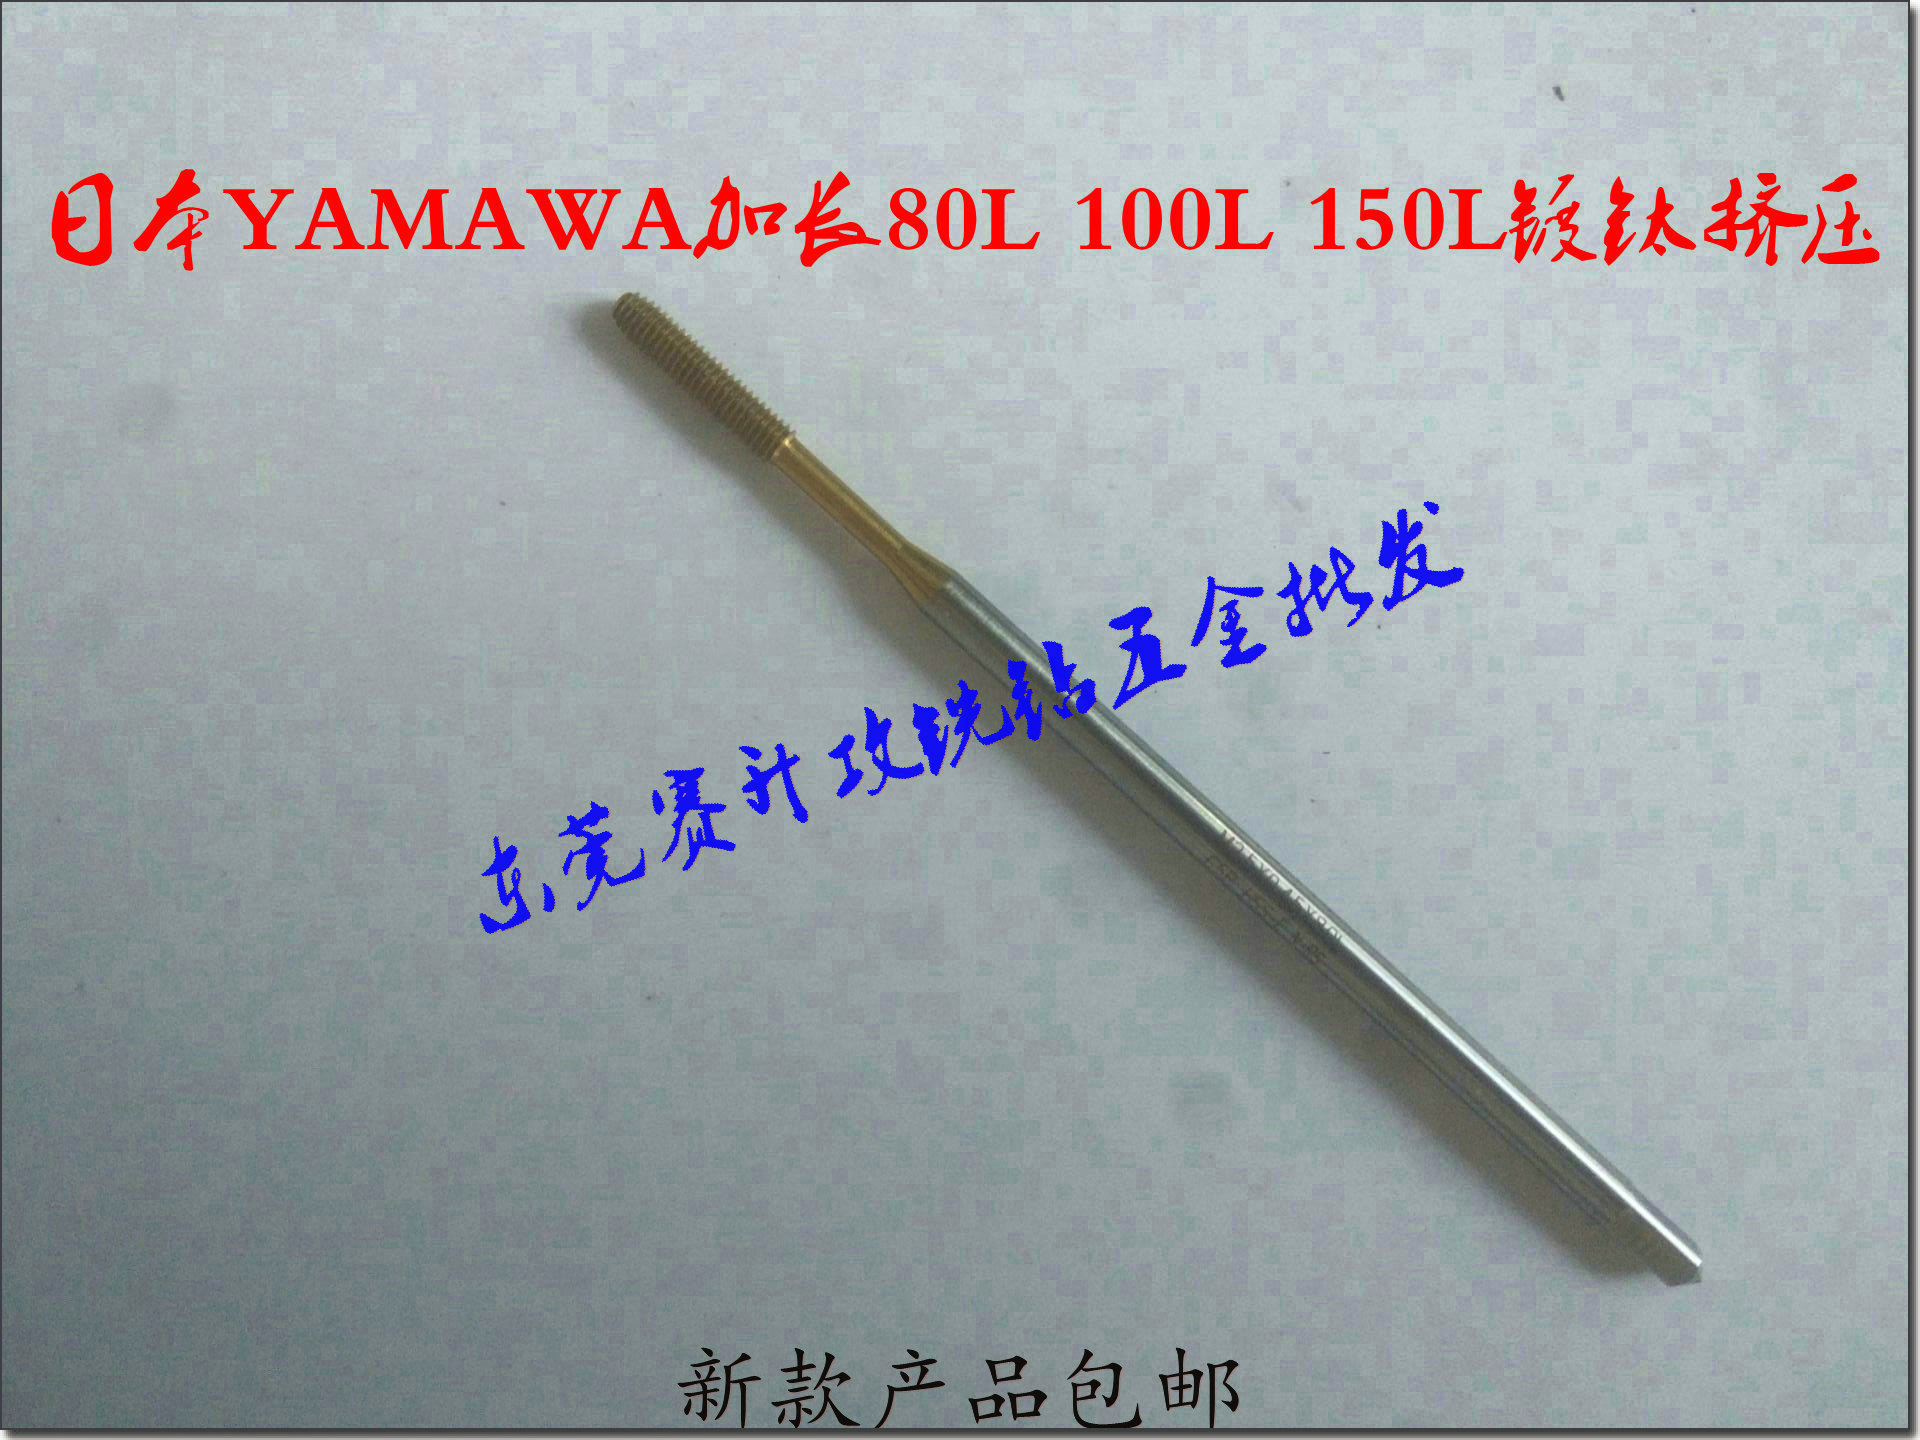 White aluminum / titanium steel with special /YAMAWA lengthened 150L extrusion screw tap M3M4M5M6M8M10M12